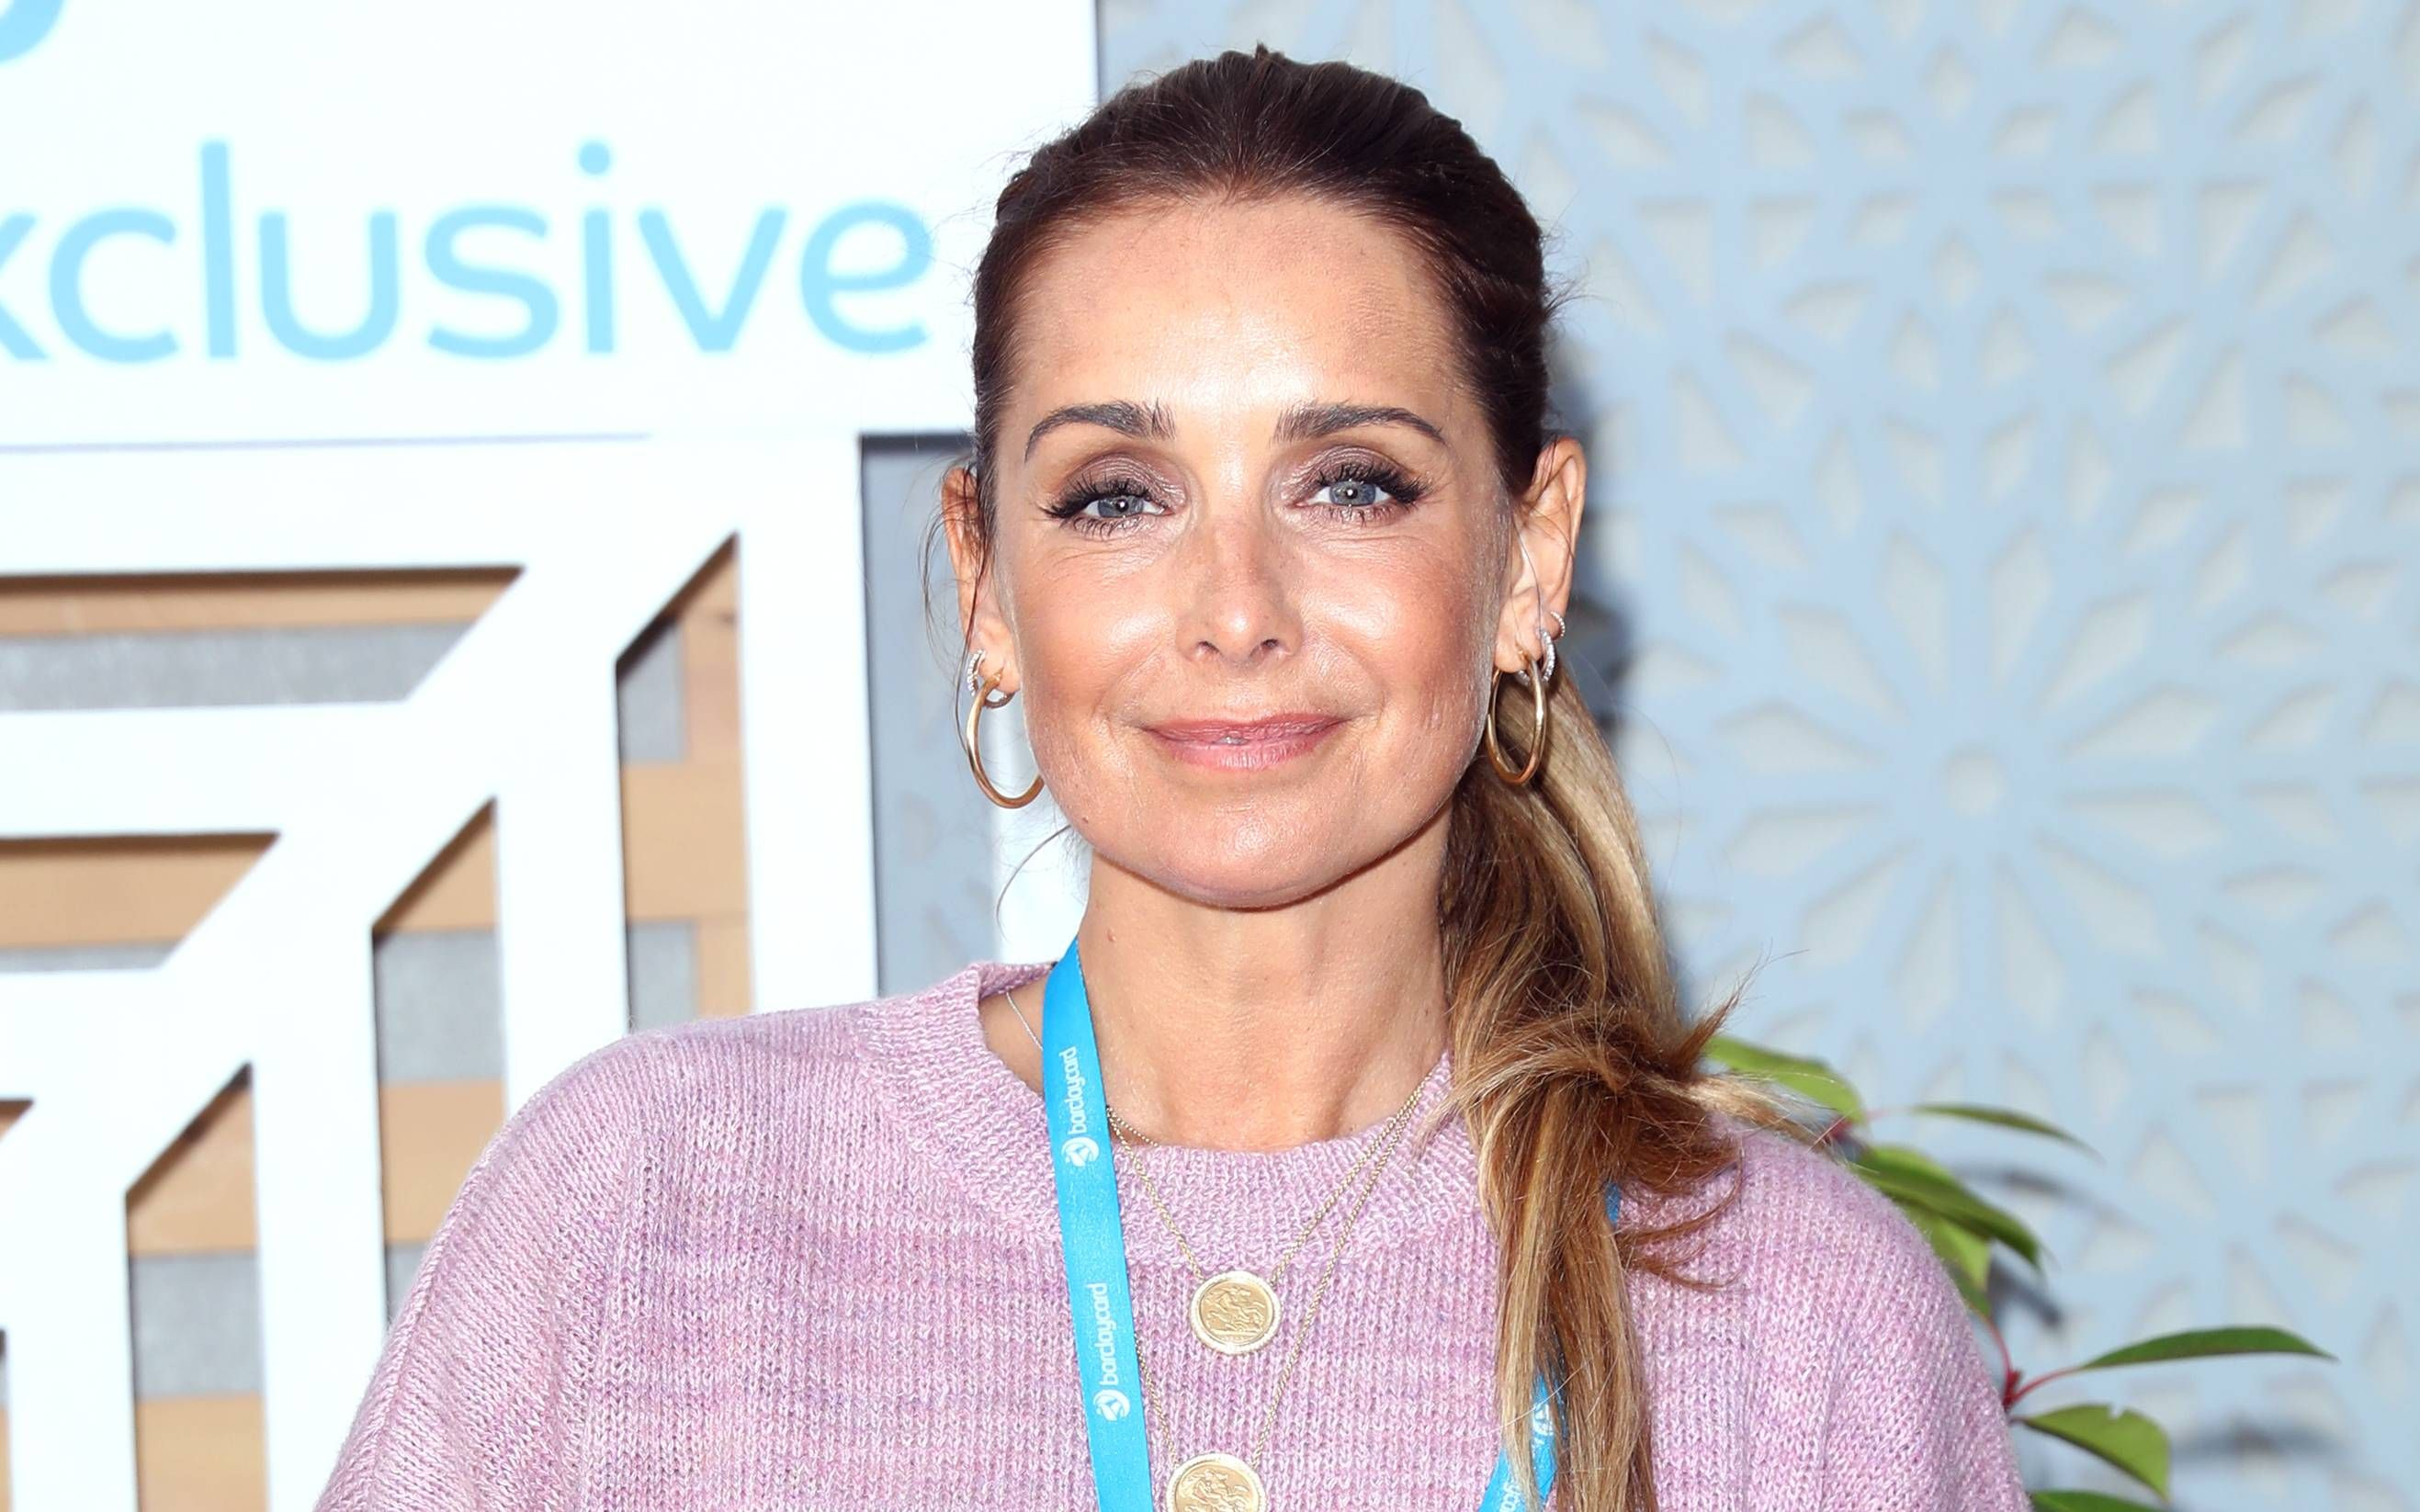 Louise Redknapp discusses 'pain' following divorce in candid interview #divorce